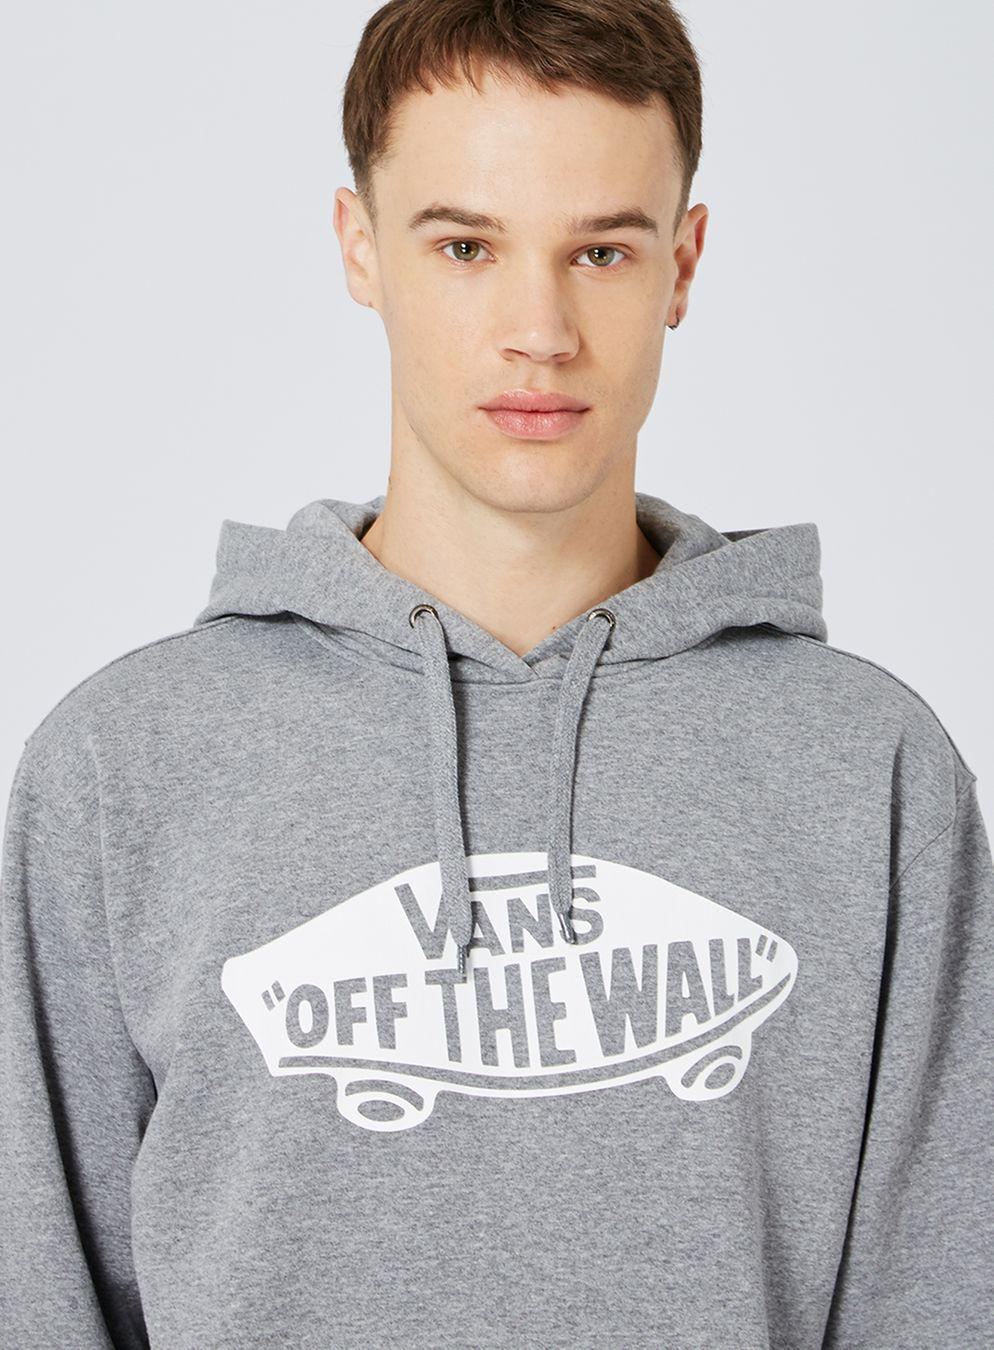 6cef4ca7e3ab89 TOPMAN Vans Grey Marl Skateboard Hoodie in Gray for Men - Lyst